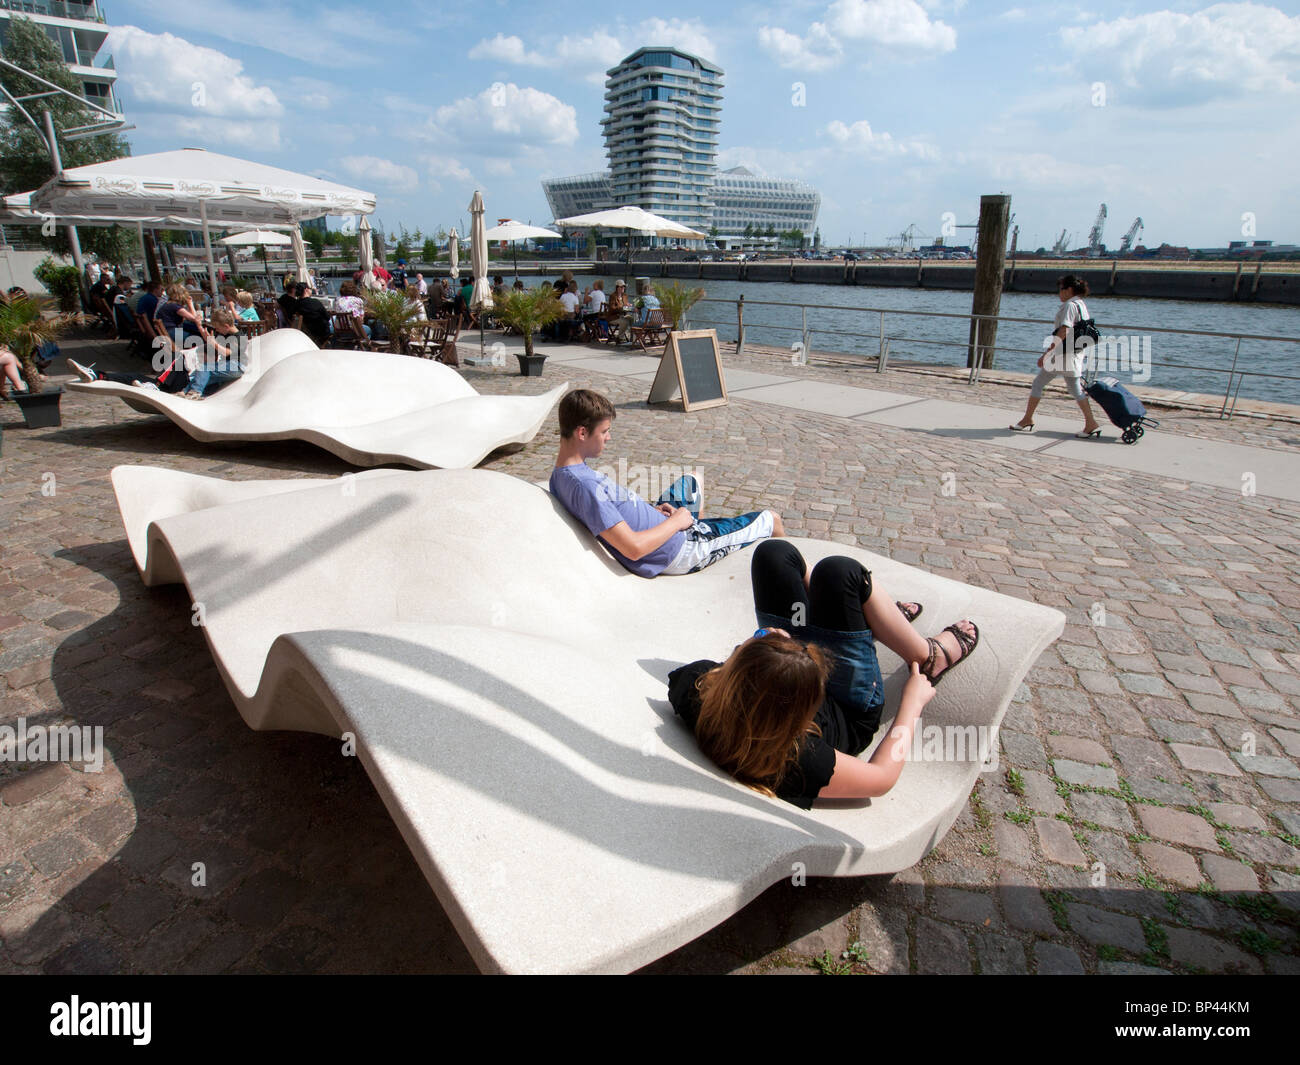 Modern promenade at Vasco Da Gamma Platz in new Hafencity property development in Hamburg Germany - Stock Image